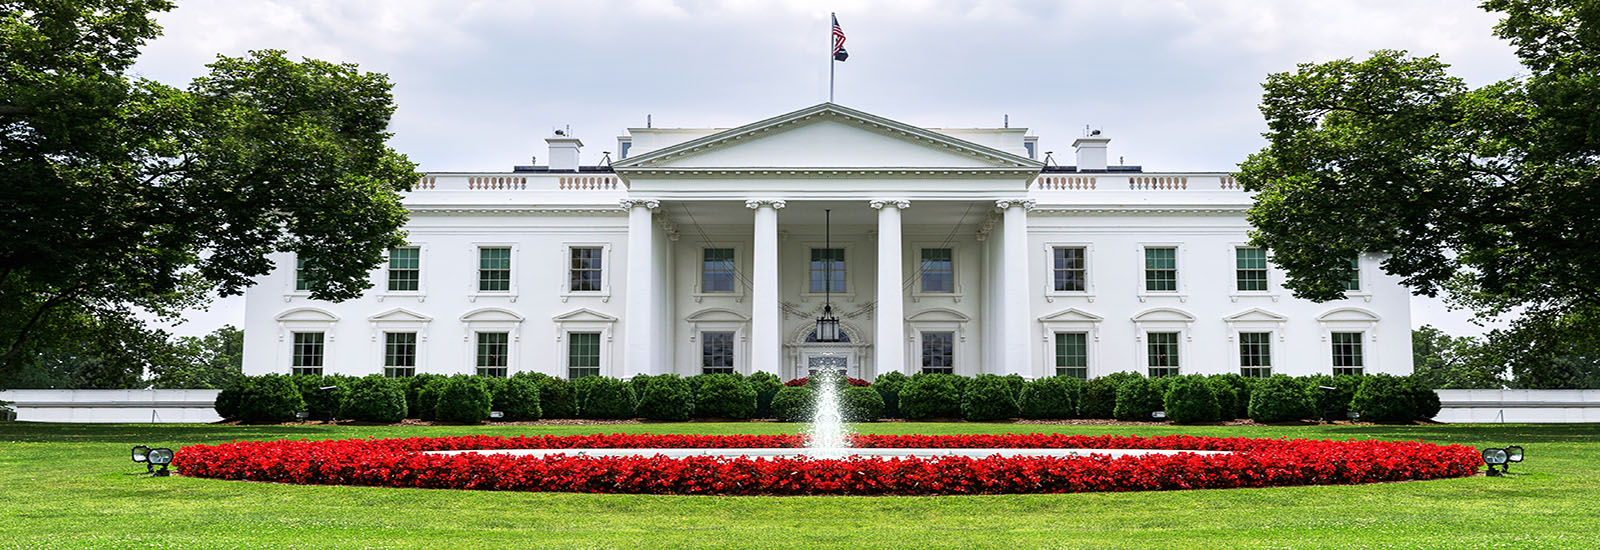 This is a stock photo. The White House in Washington, D.C.